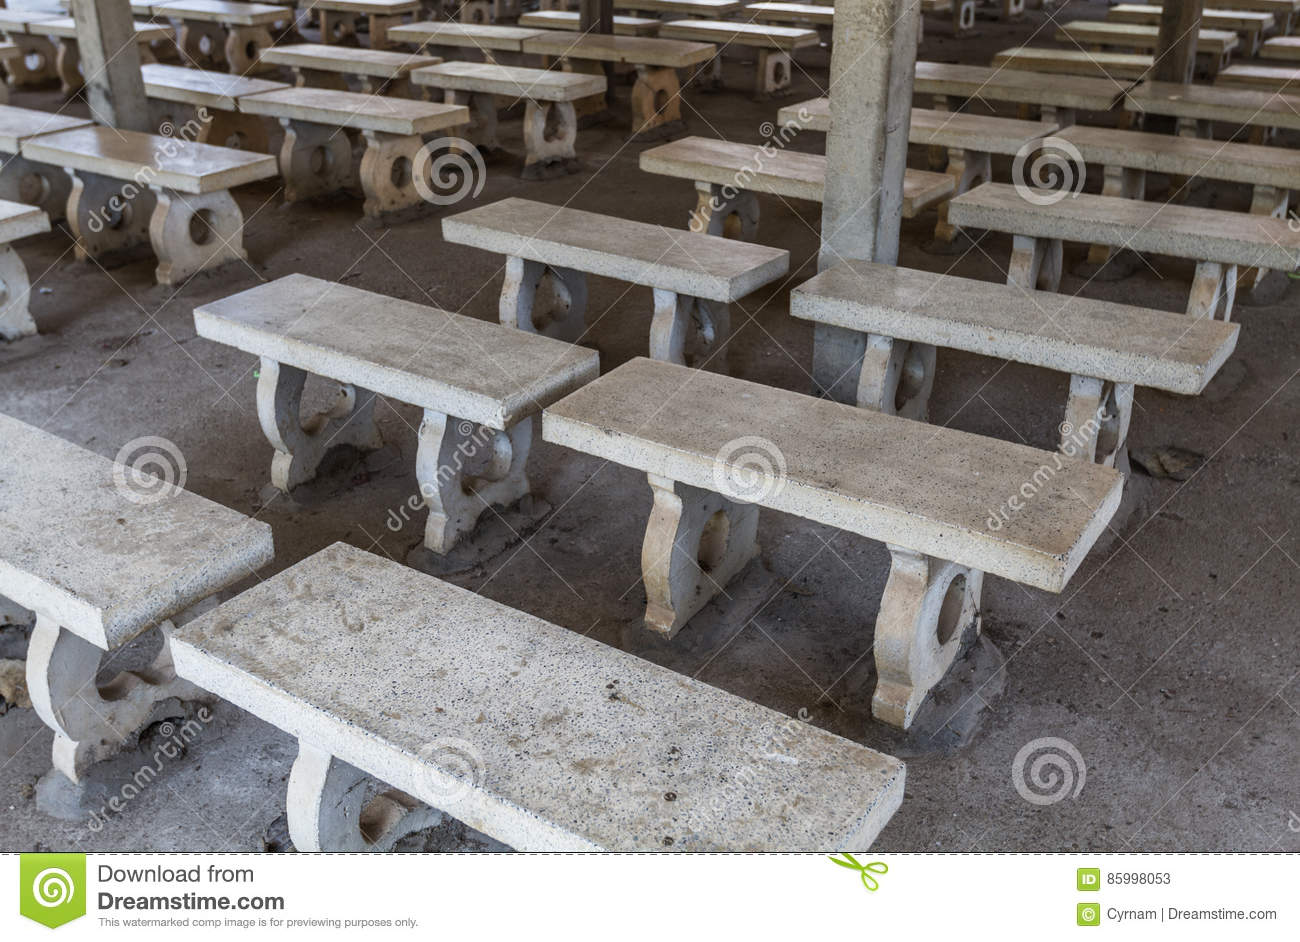 Awesome Picturesque Rows Of White Stone Benches Perfectly Aligned Alphanode Cool Chair Designs And Ideas Alphanodeonline